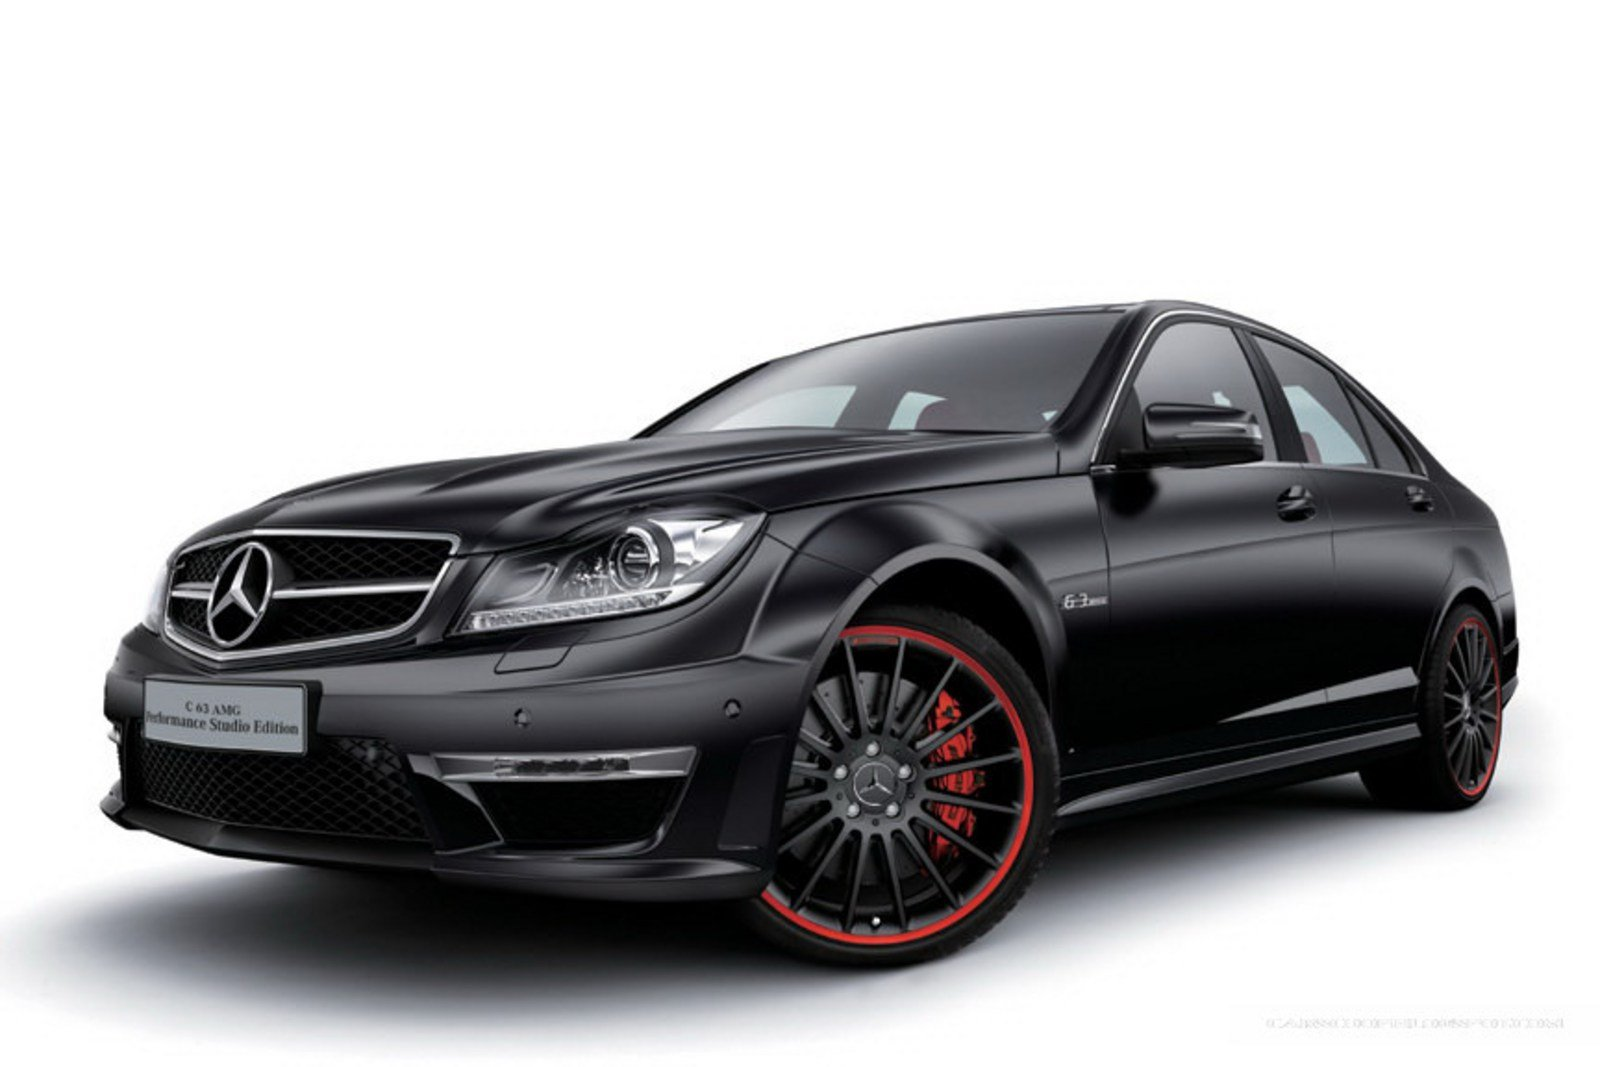 2013 mercedes benz c63 amg performance studio edition. Black Bedroom Furniture Sets. Home Design Ideas